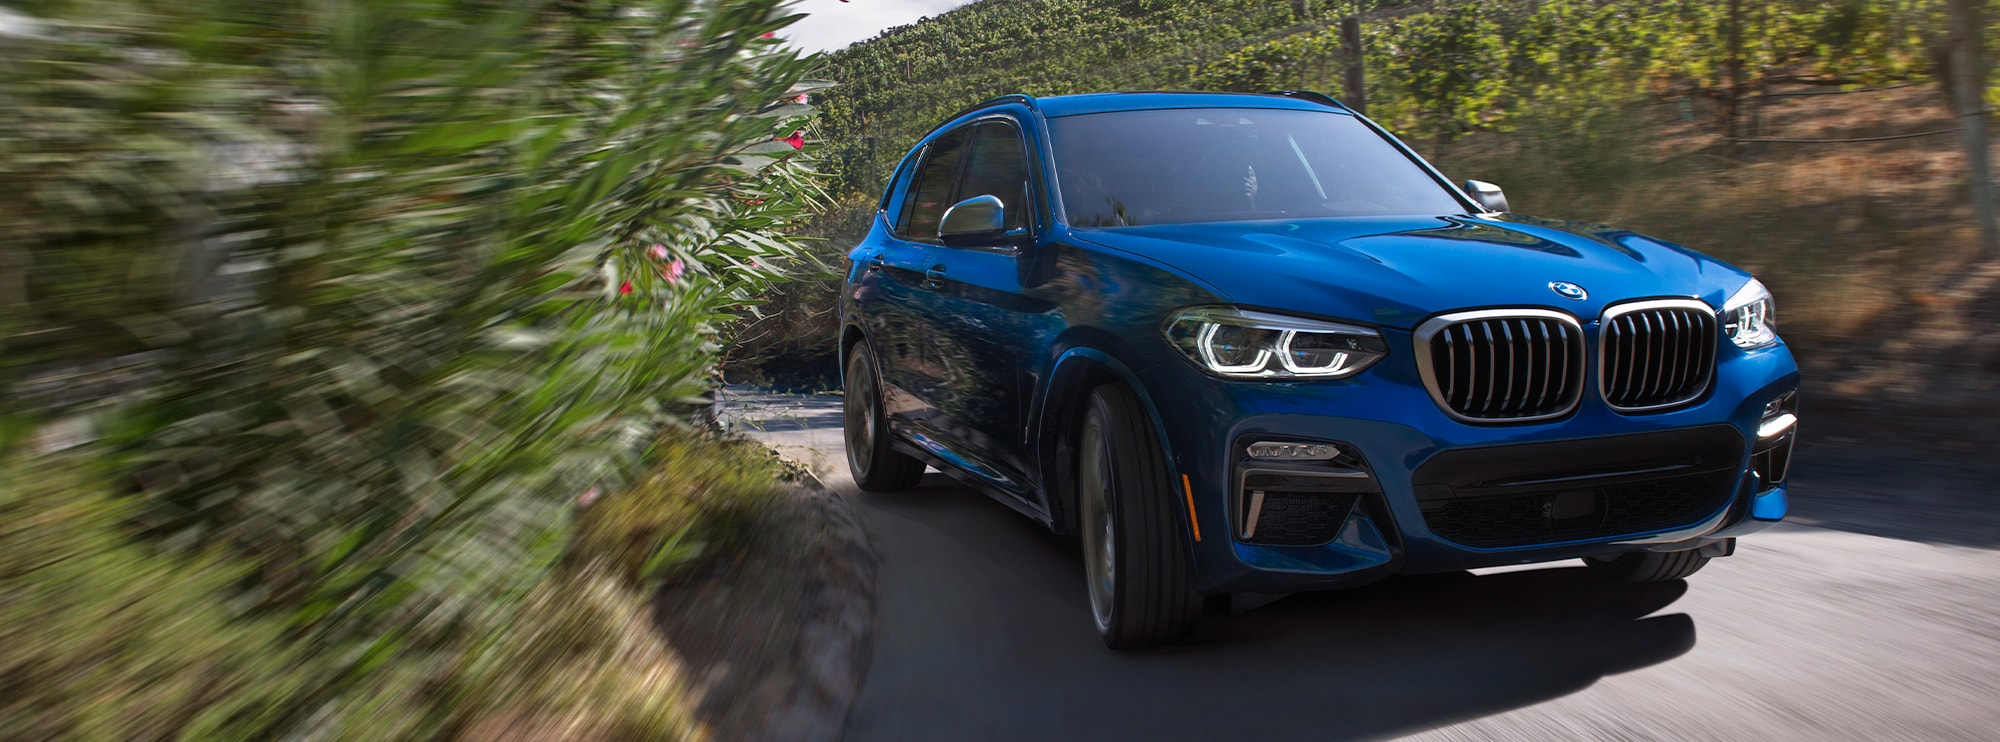 2020 BMW X3 For Lease | BMW of Reading, My BMW Dealership